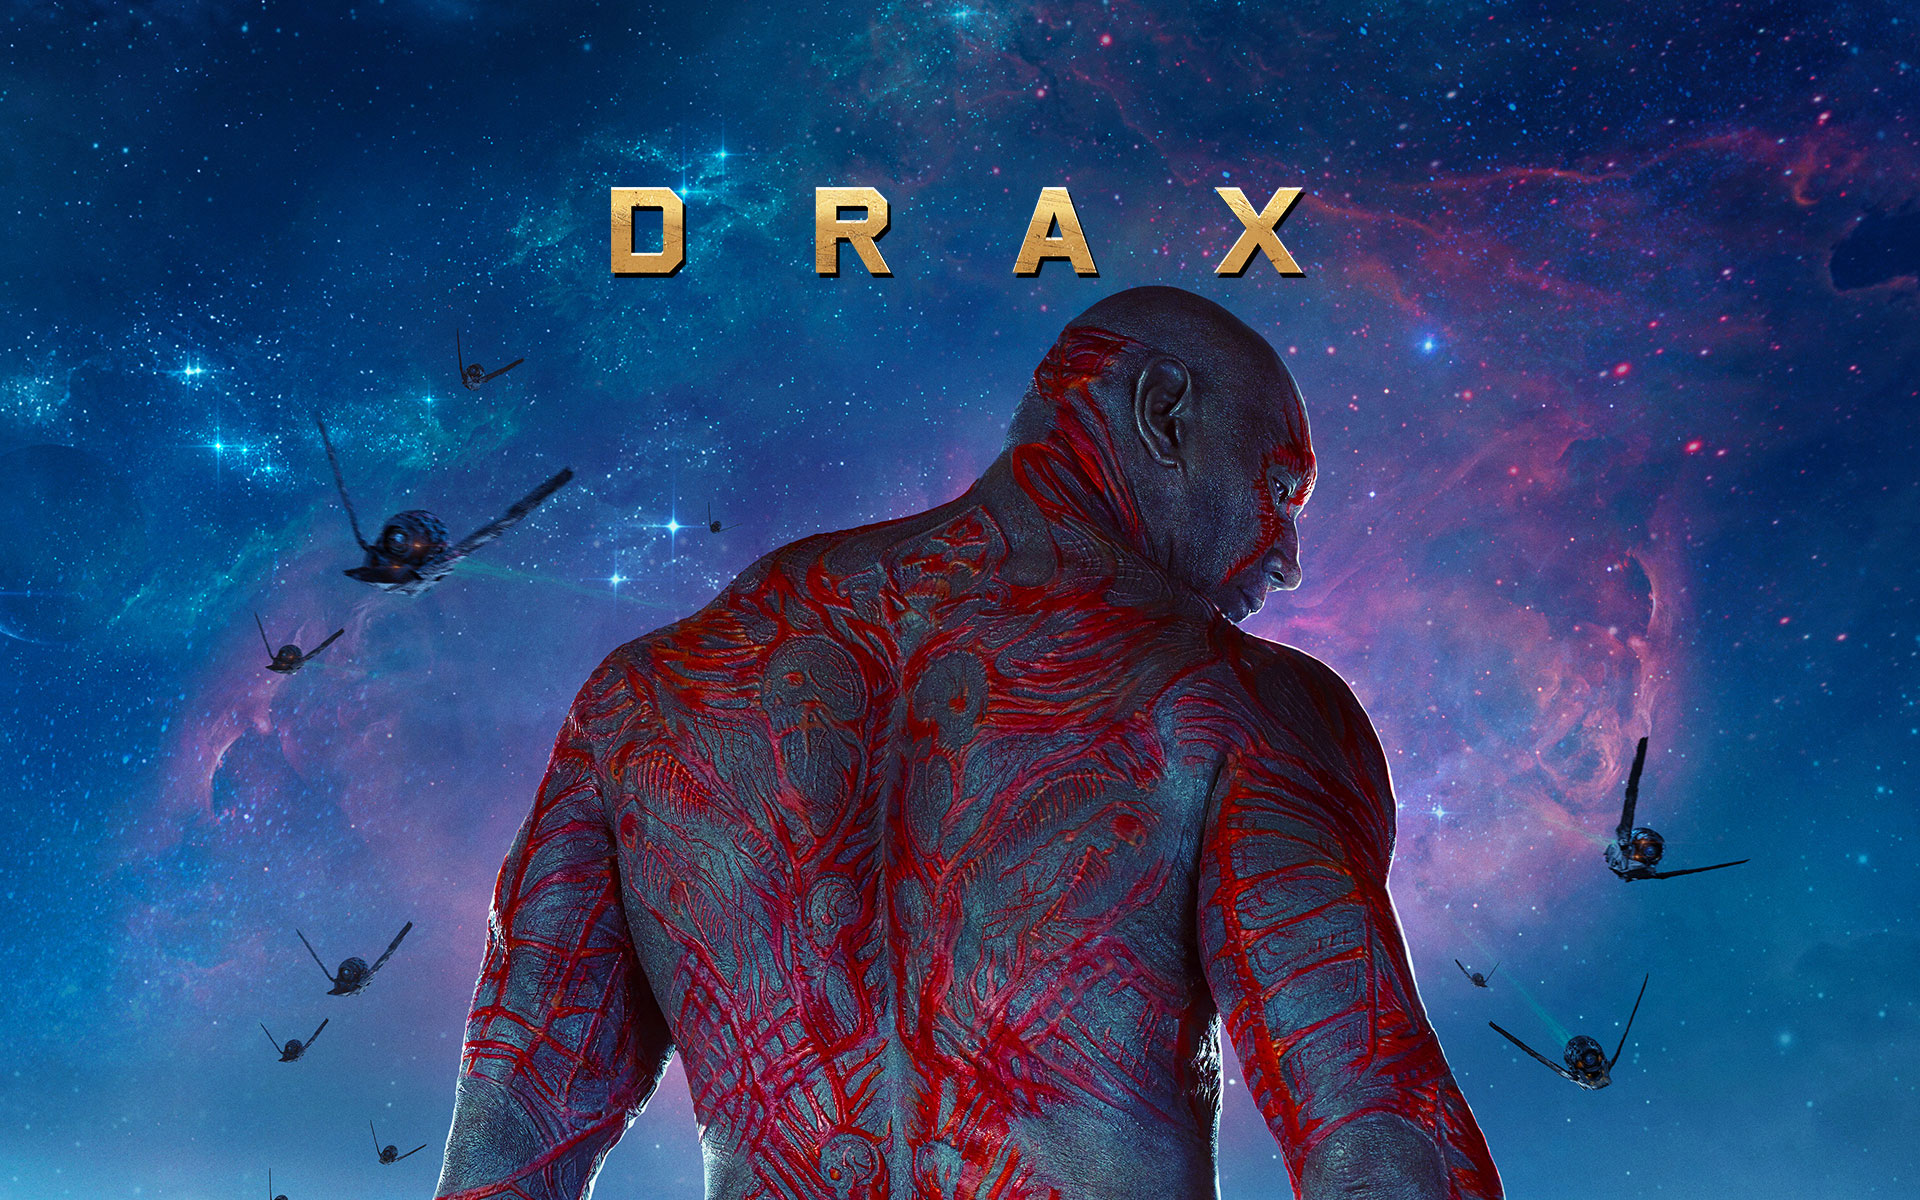 guardians-of-the-galaxy-drax-wallpaper-hd1